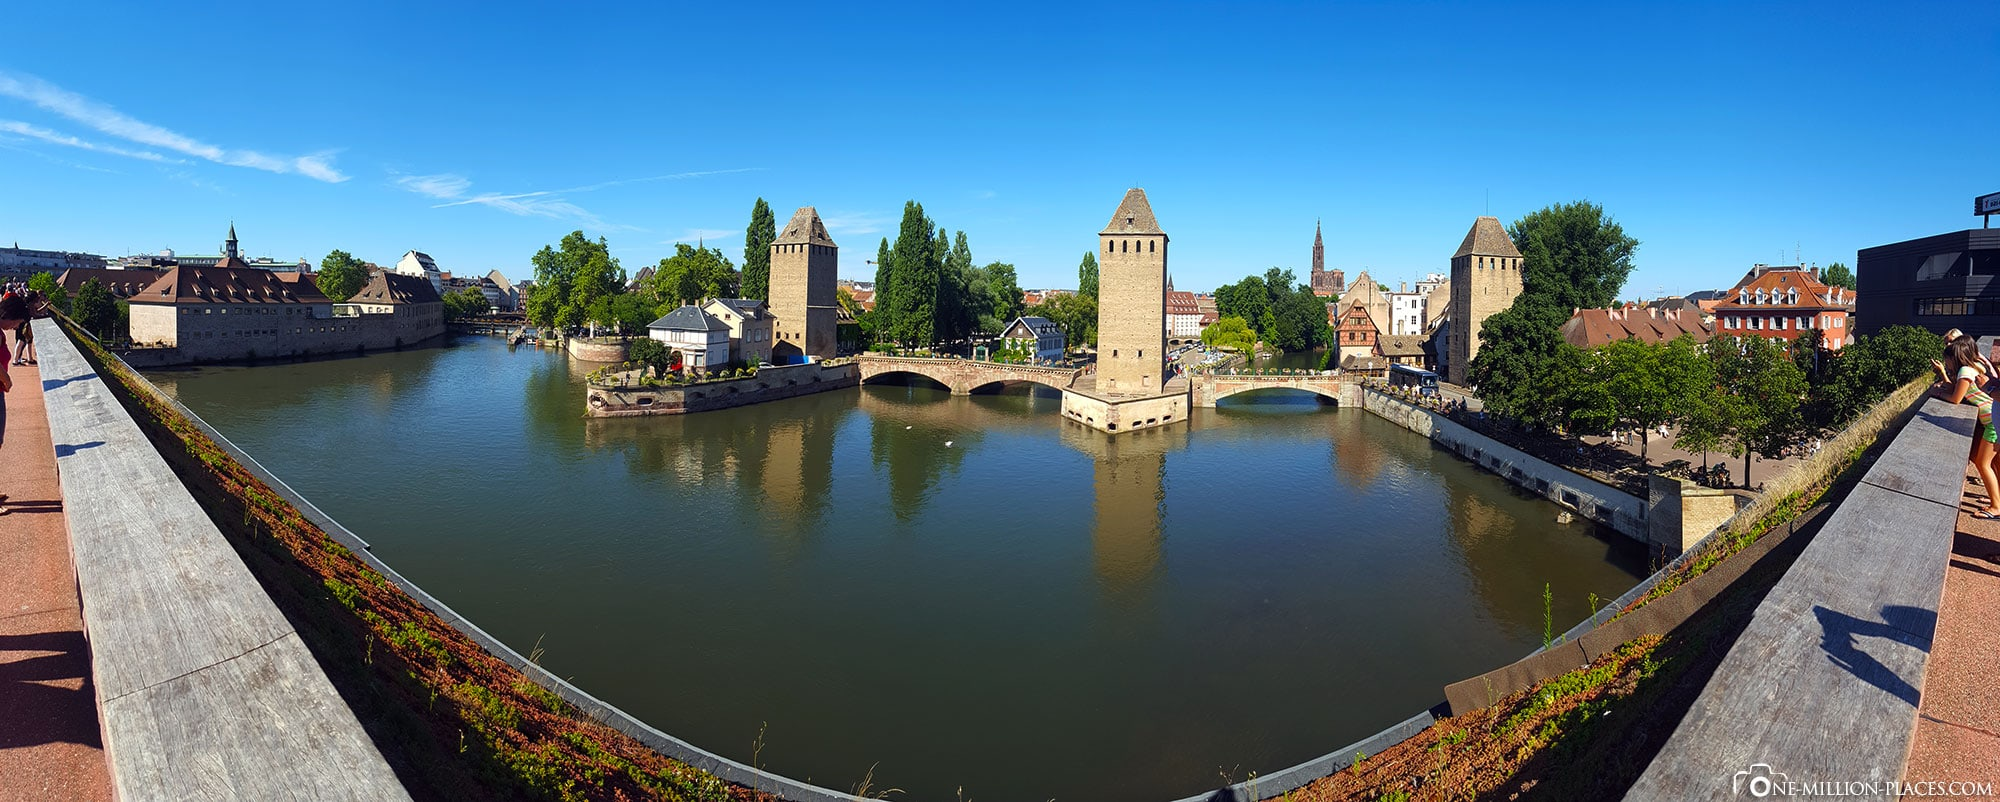 Panoramic view of the viewing terrace Barrage Vauban, city of Strasbourg, France, On your own, photo spots, travelreport